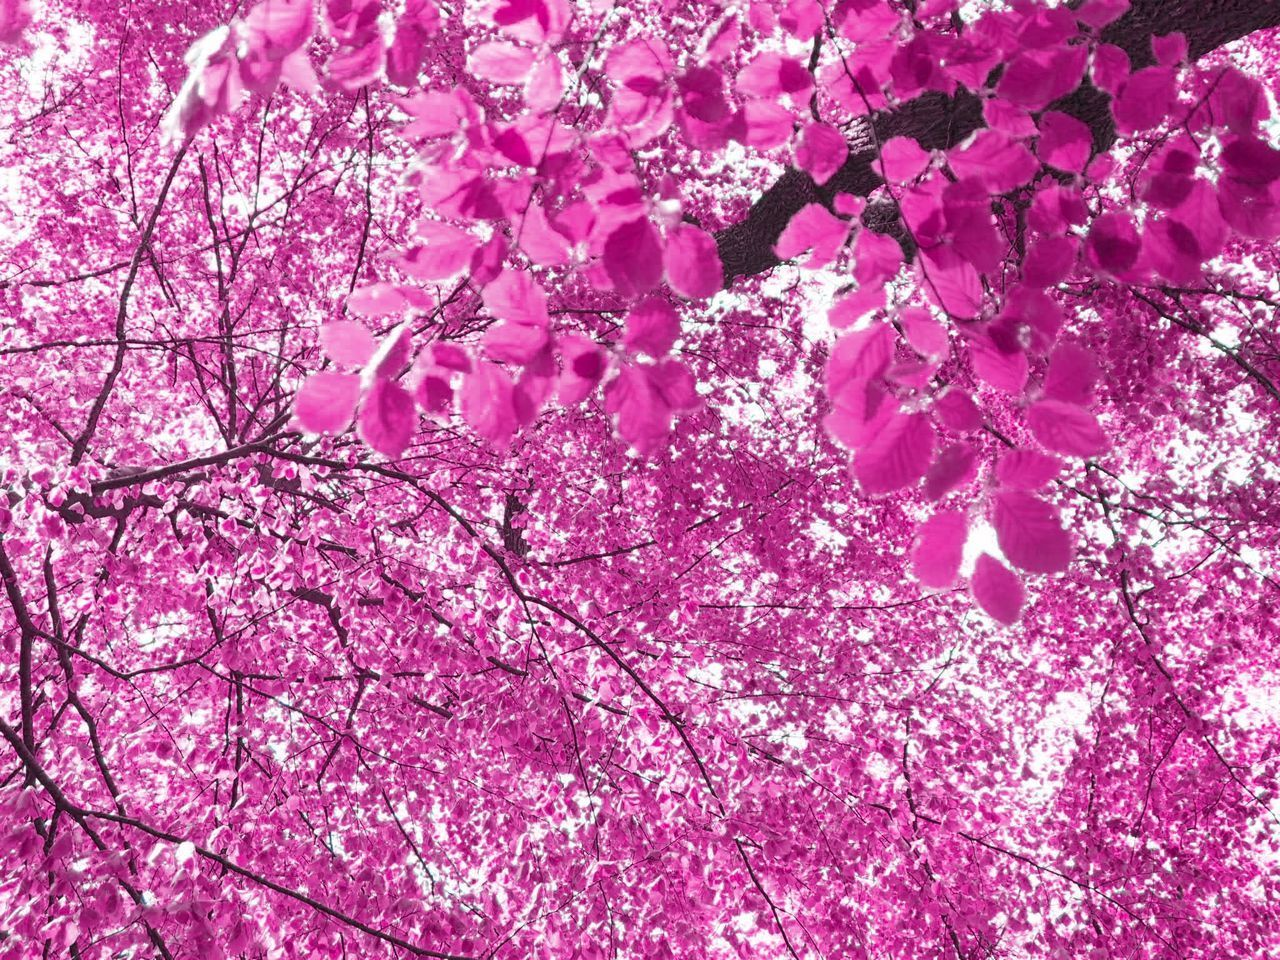 LOW ANGLE VIEW OF PINK CHERRY BLOSSOMS